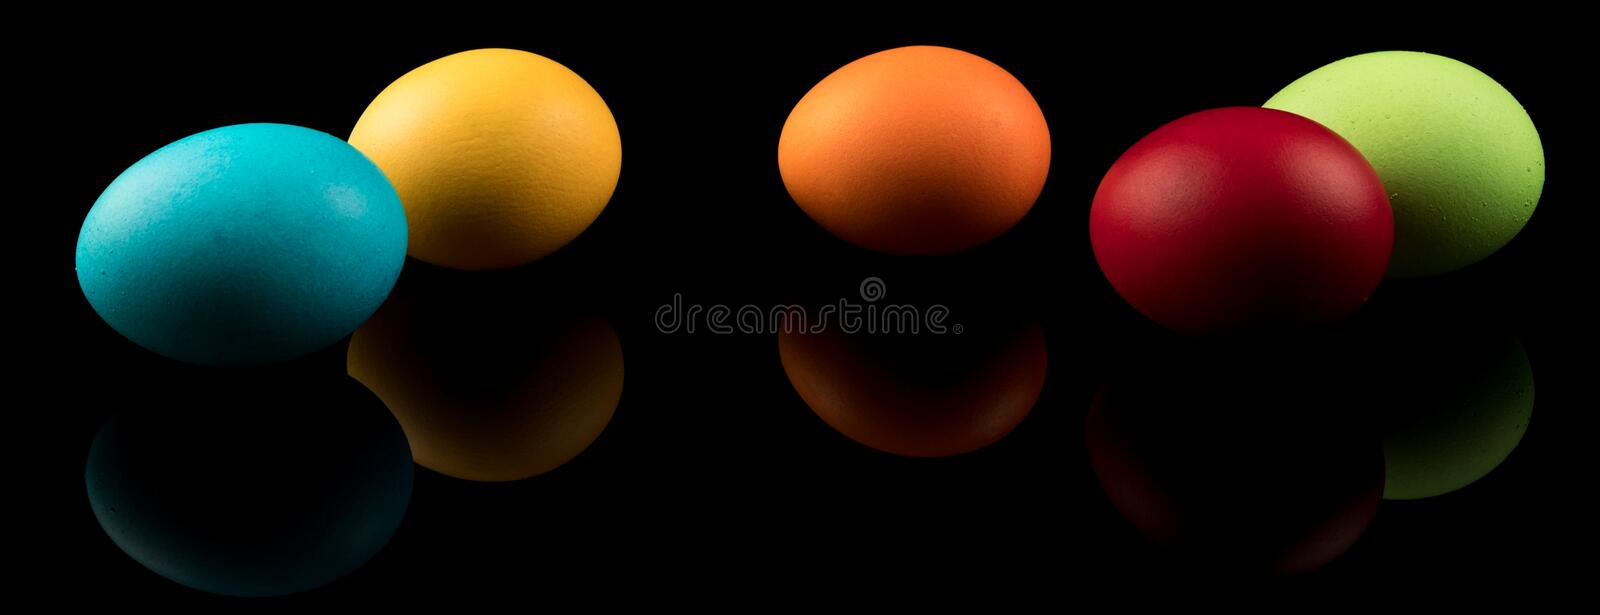 Easter Eggs Banner. Colorful Easter Eggs on black background with reflection. Modern Design royalty free illustration